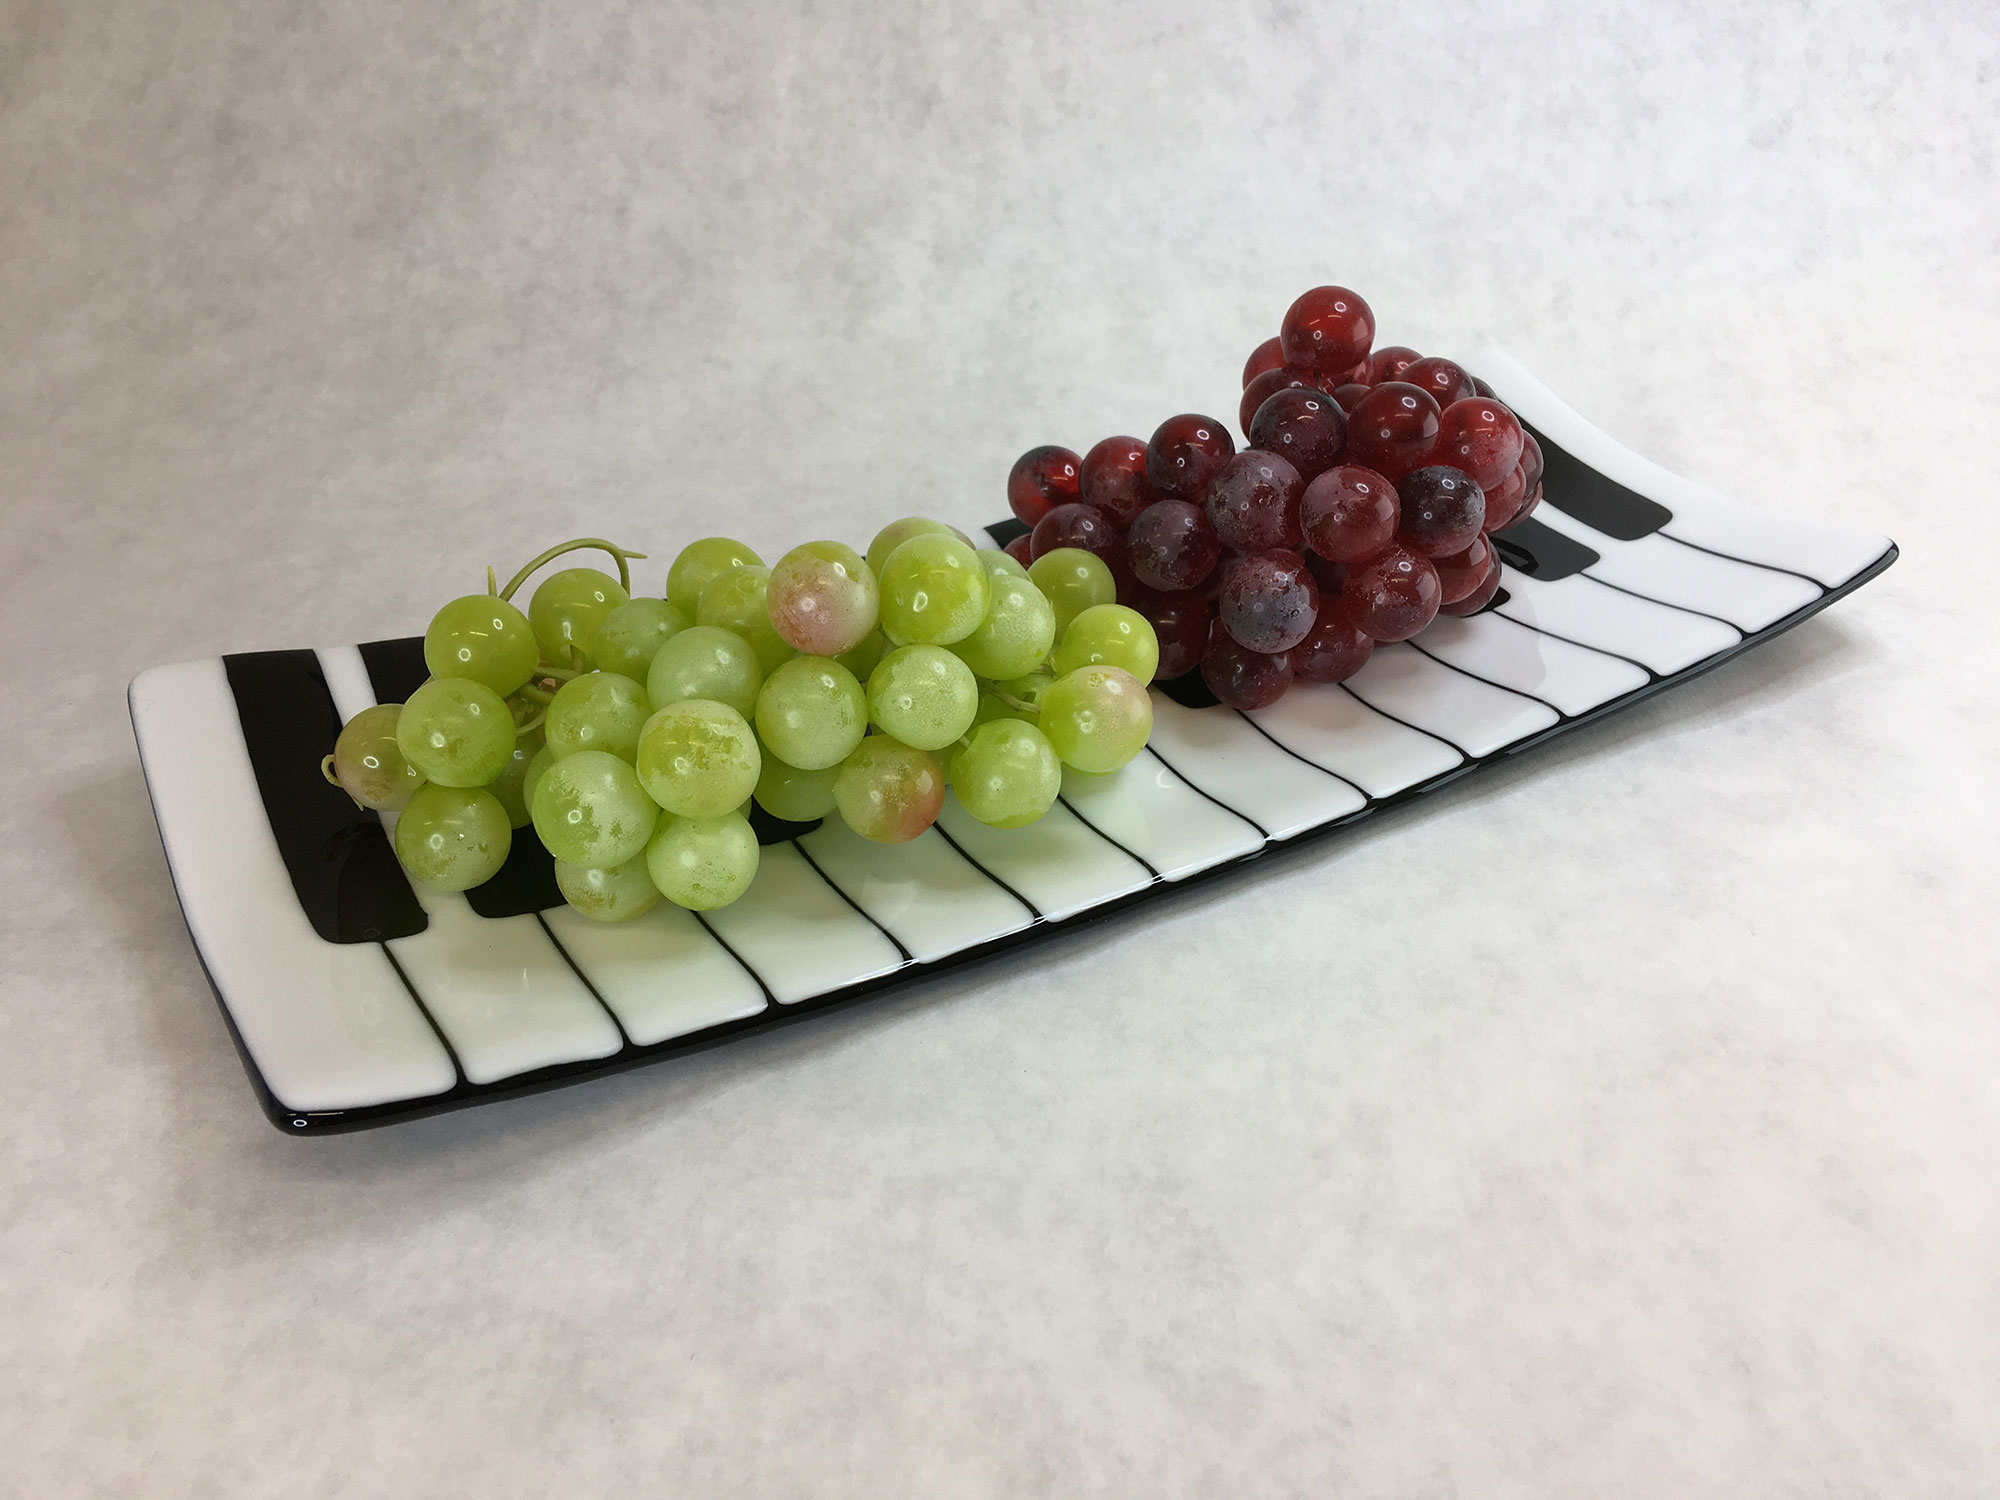 With Grapes